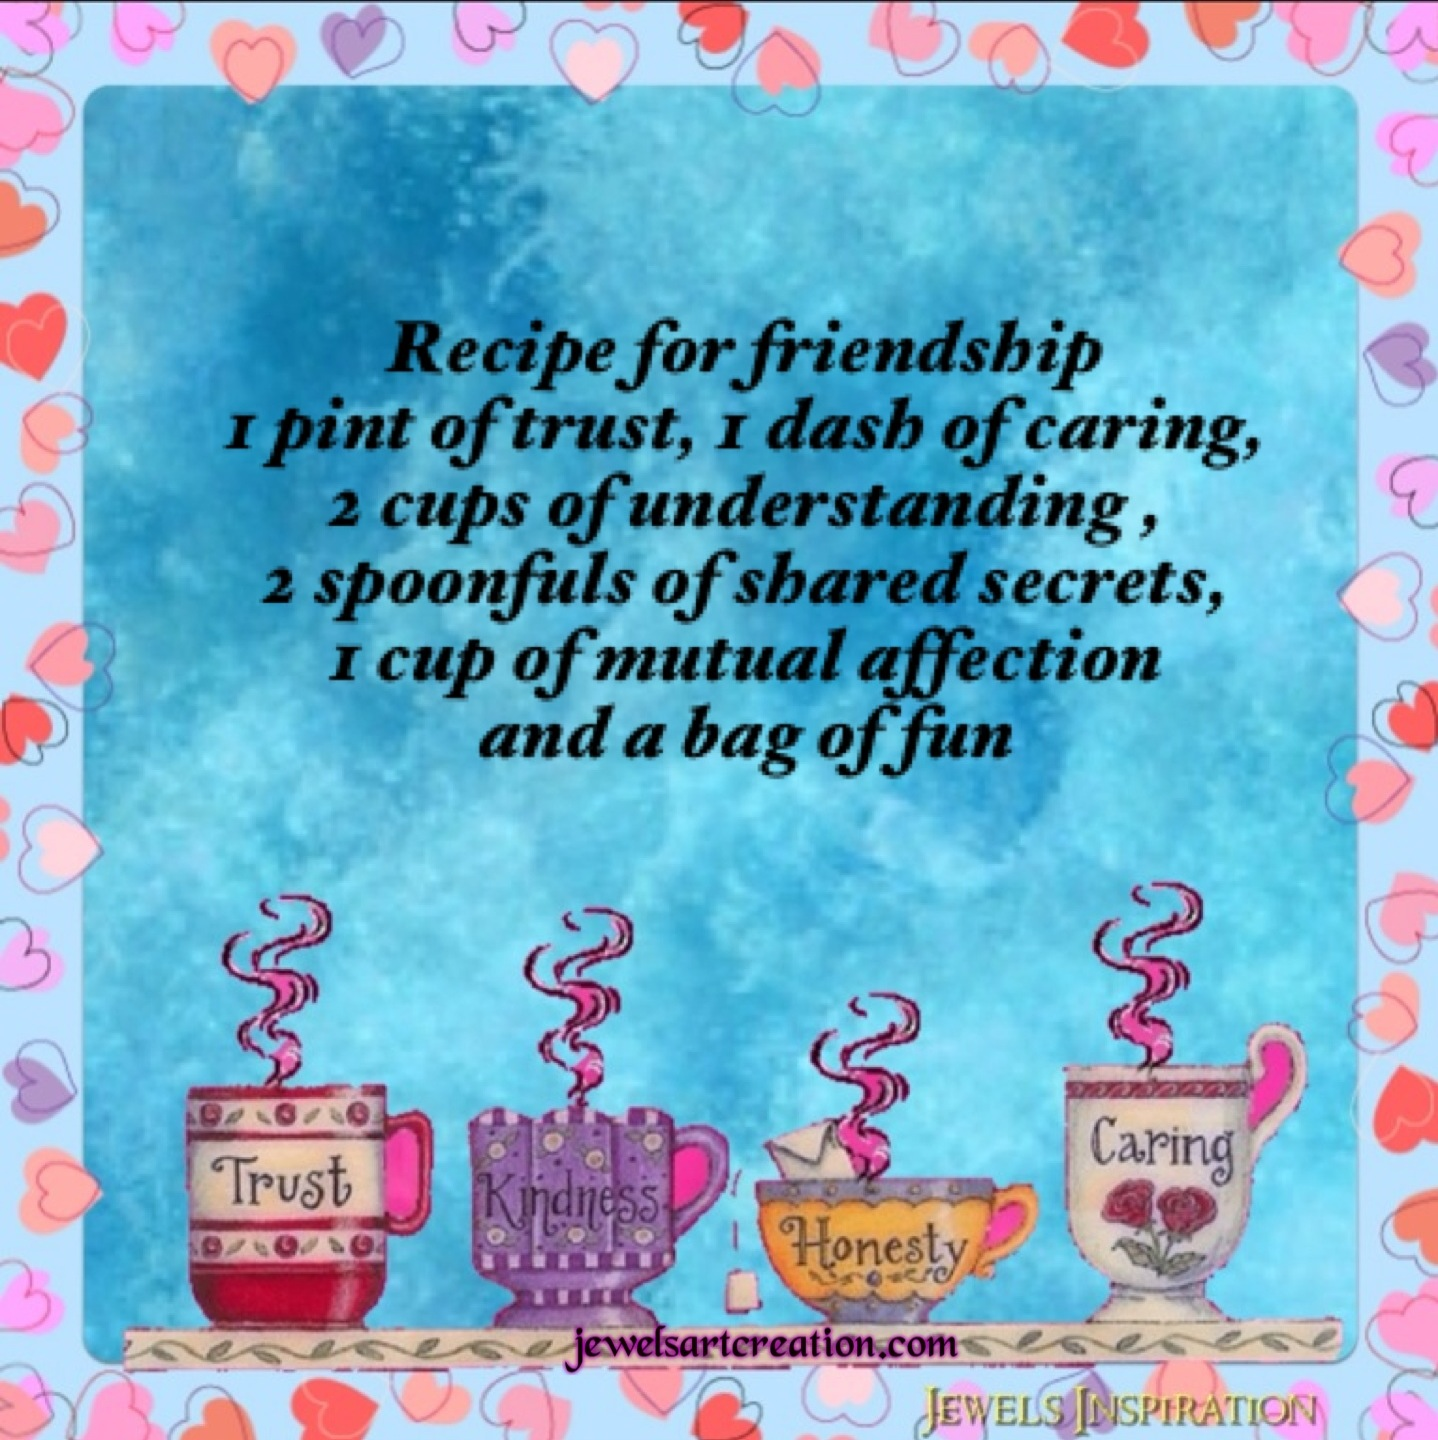 Quotes About Honesty In Friendship Recipe For Friendship  Jewels Art Creation